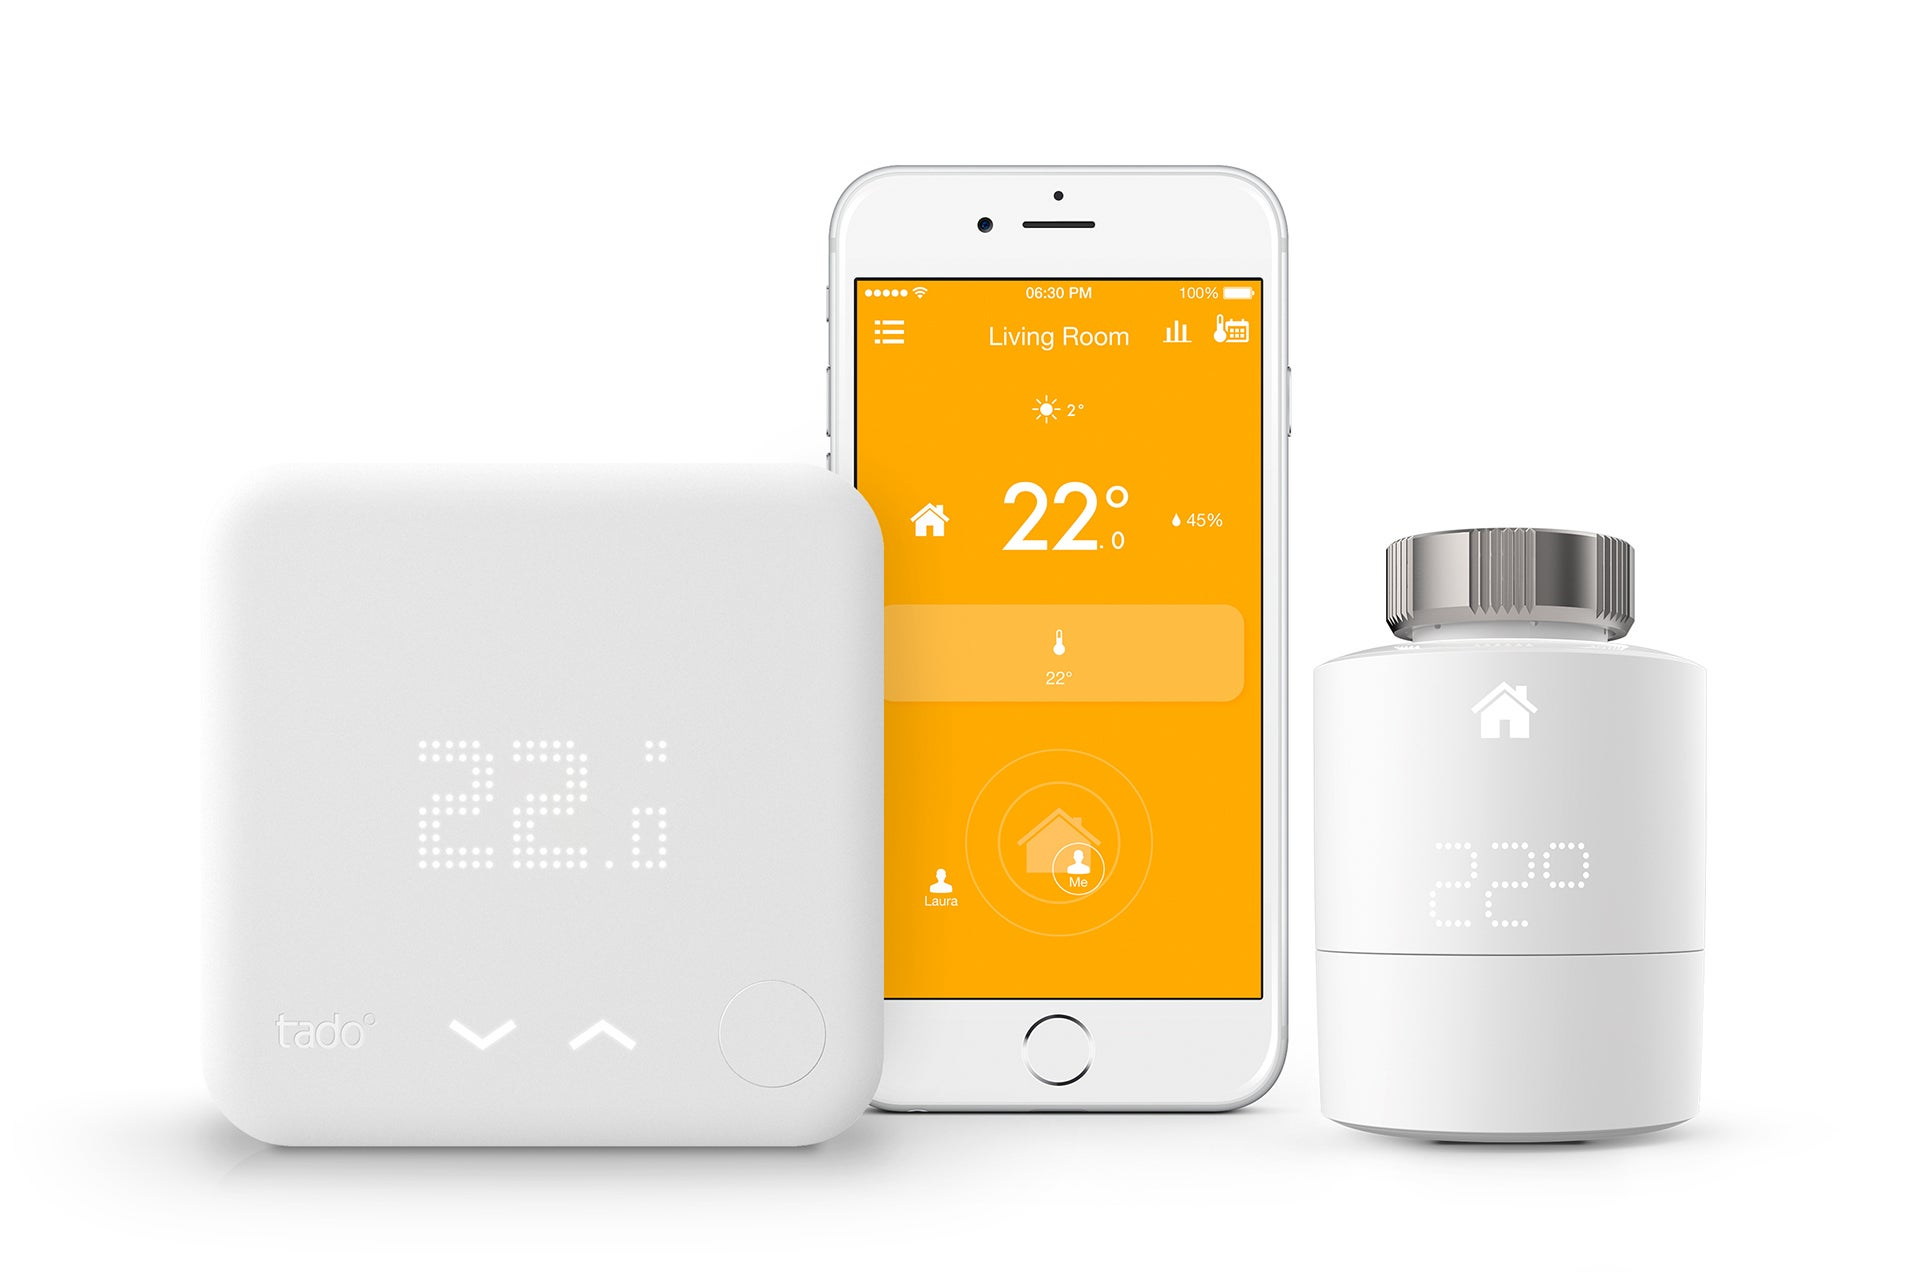 Best smart thermostats 2019 - Read this to cut heating bills